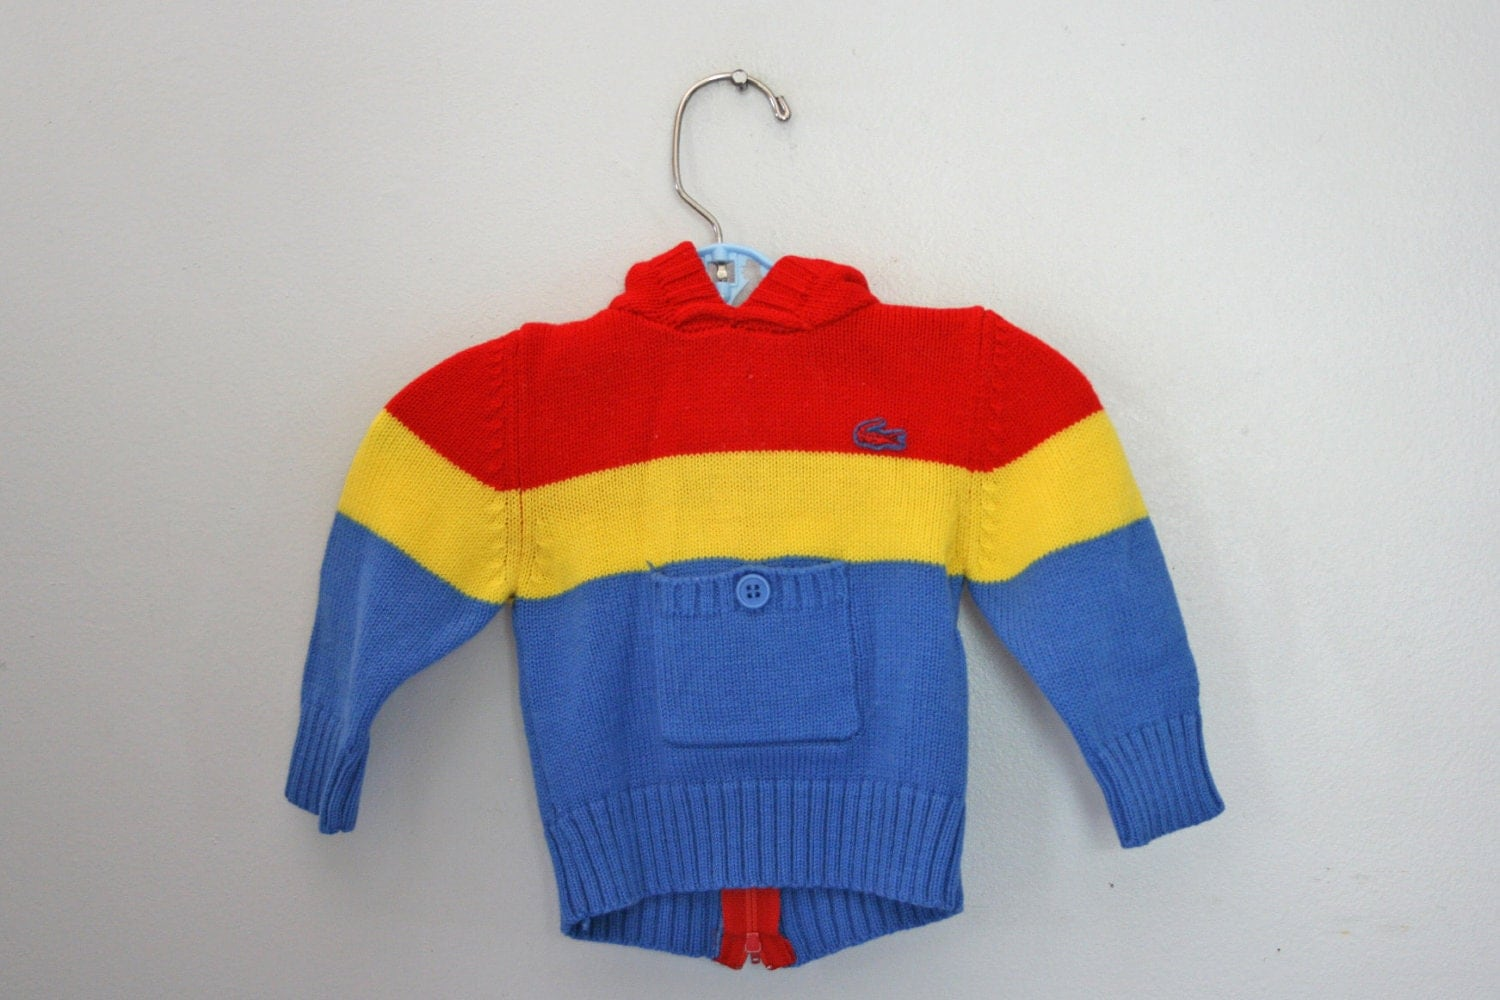 vintage 80s Izod Lacoste Baby Boy Primary Colors Striped Knit Sweater Hoodie with Red Crocodile - vintagekidlets